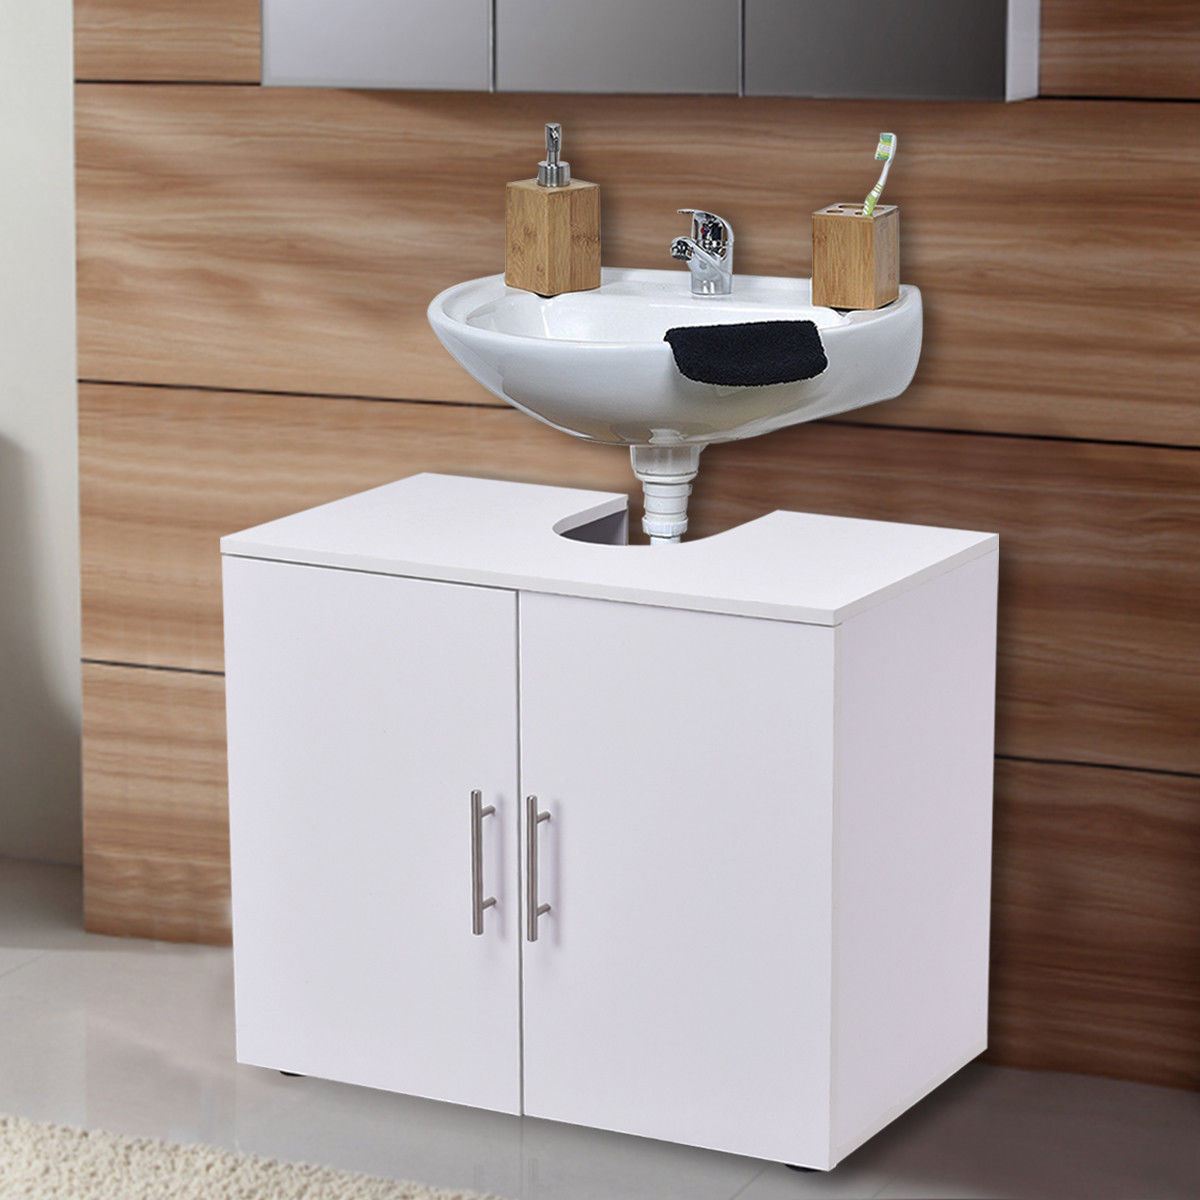 Costway Non Pedestal Under Sink Bathroom Storage Vanity Cabinet Space Saver Organizer